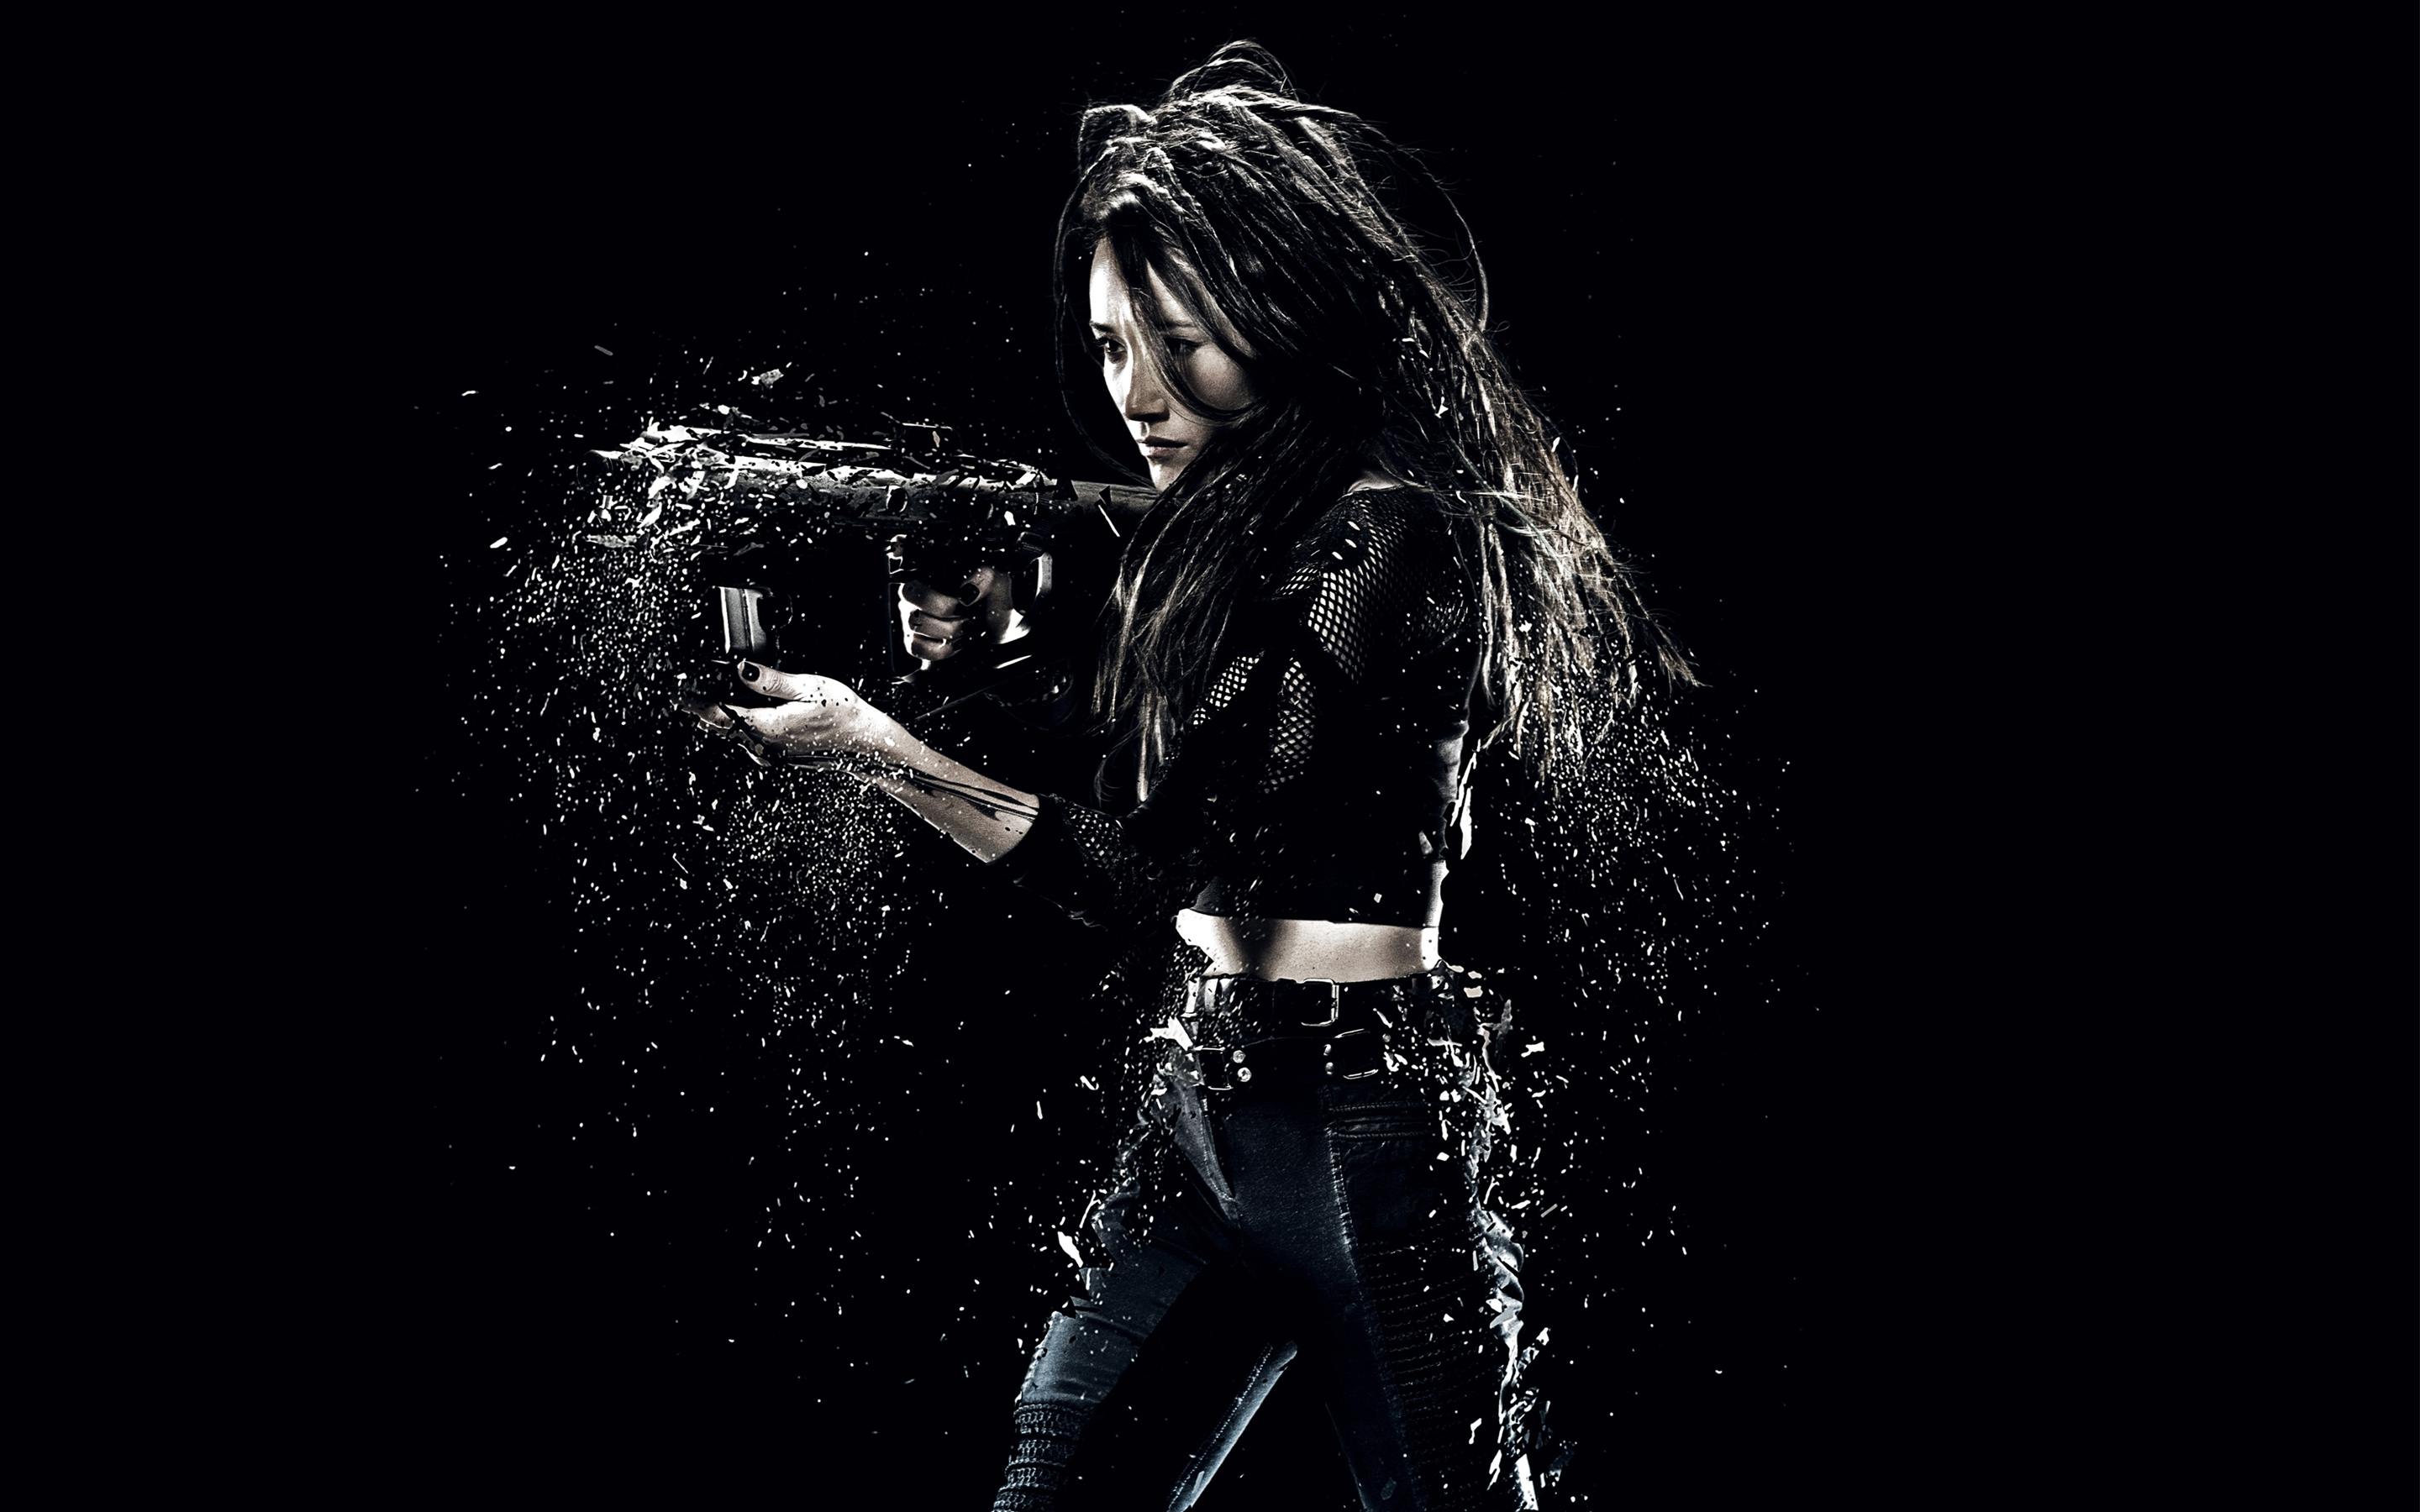 14 HD Insurgent Movie Wallpapers